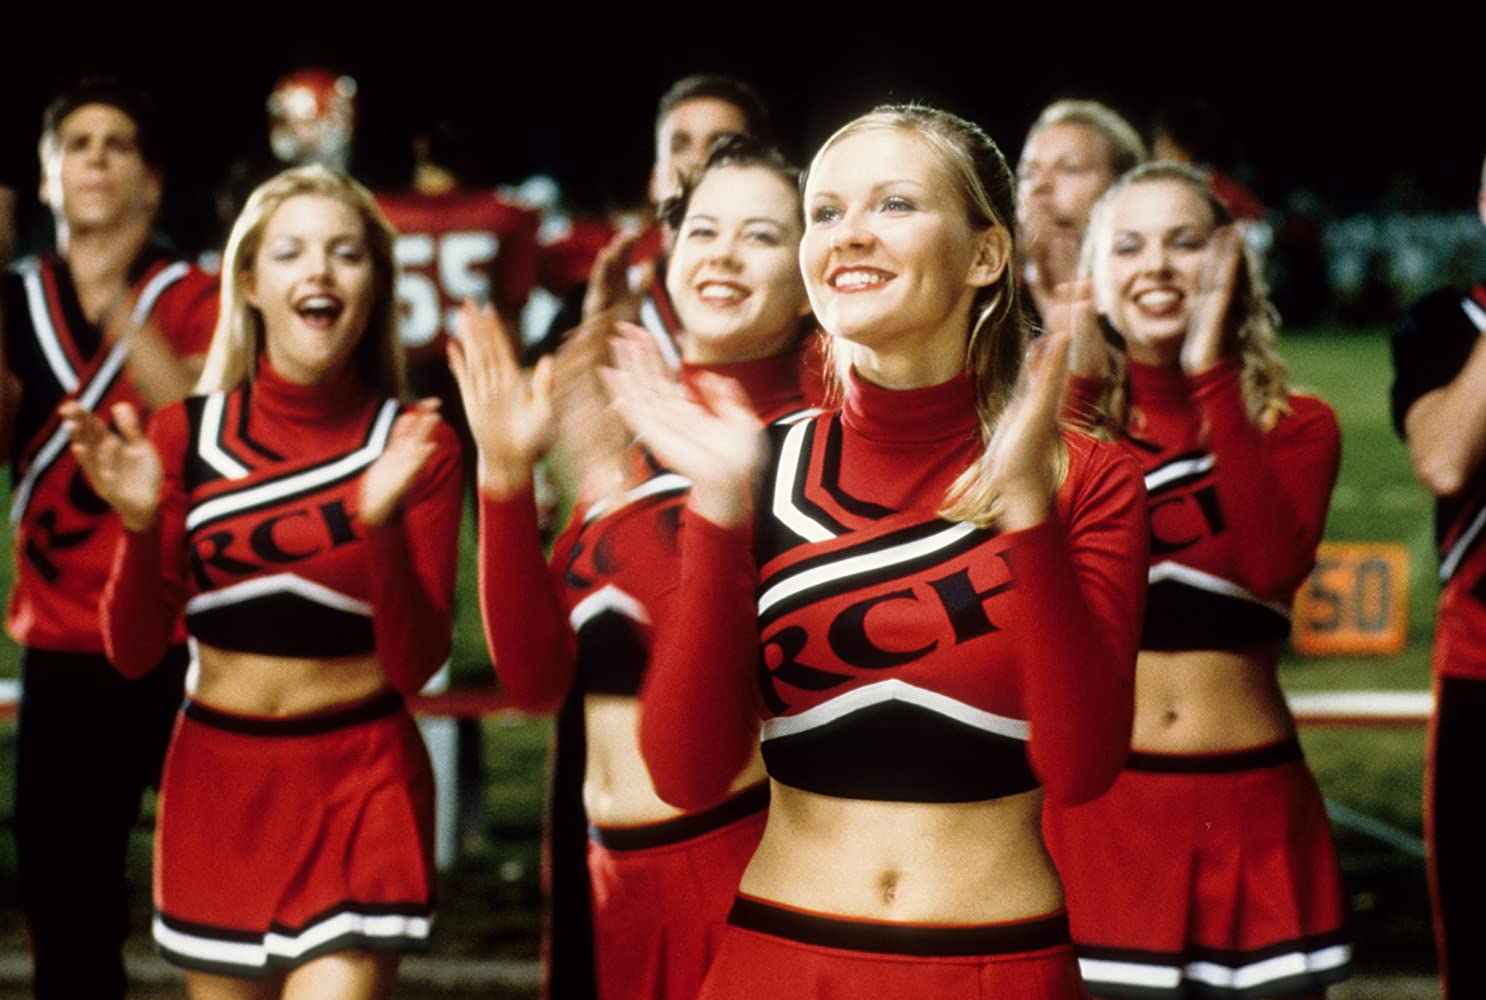 Kirsten Dunst, Clare Kramer, Rini Bell, Huntley Ritter, and Nathan West in Bring It On (2000)